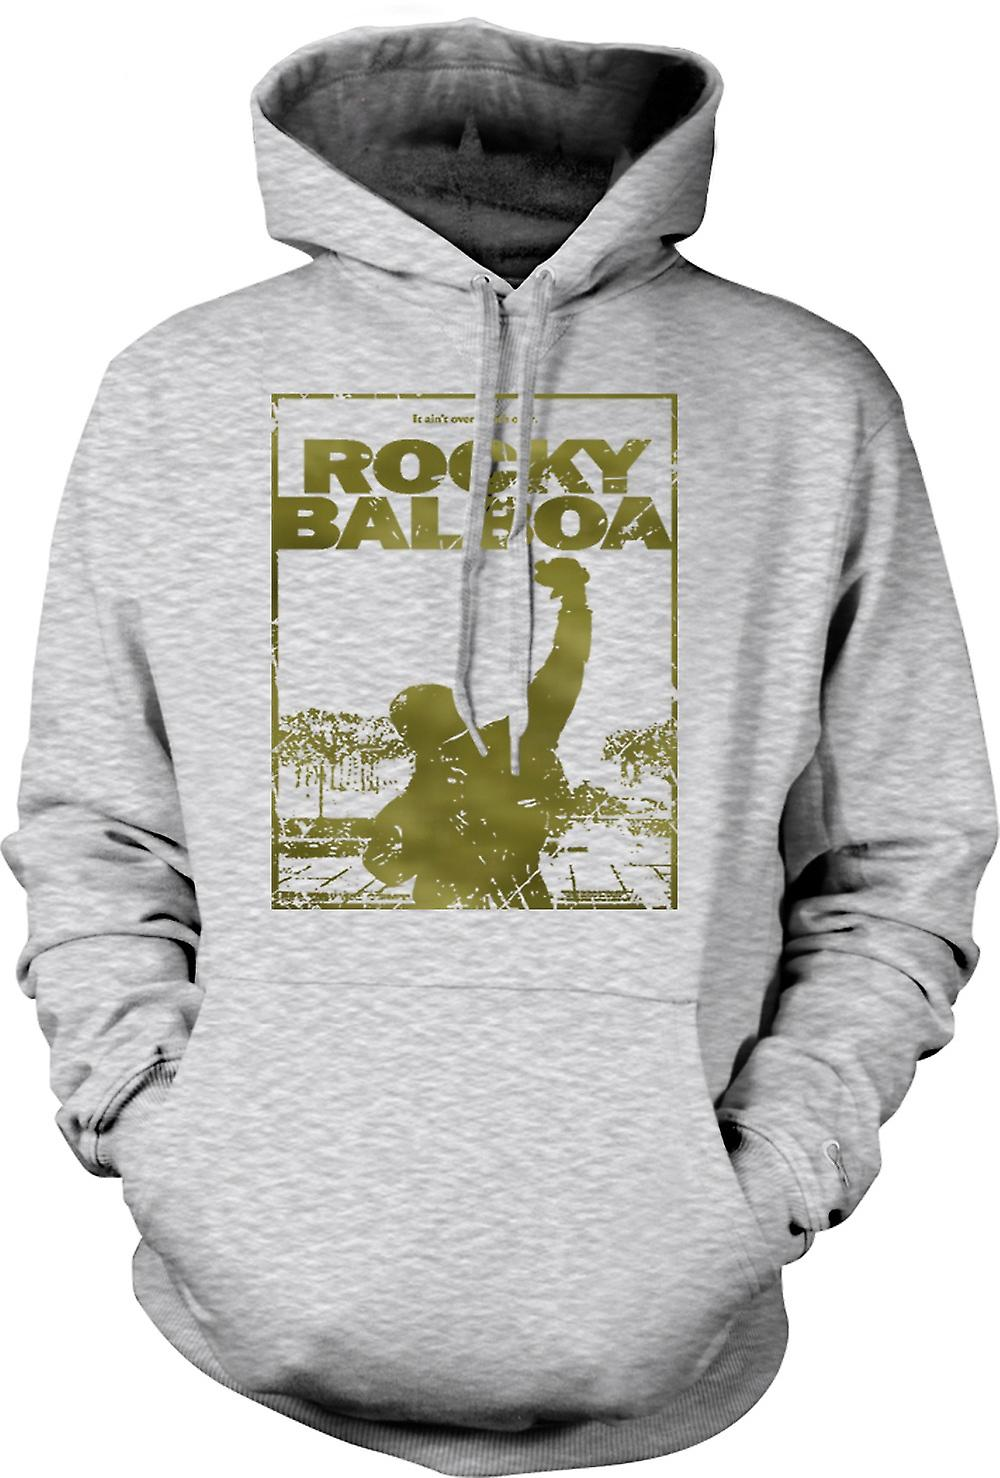 Mens Hoodie - Rocky Balboa Punch - Movie - Funny